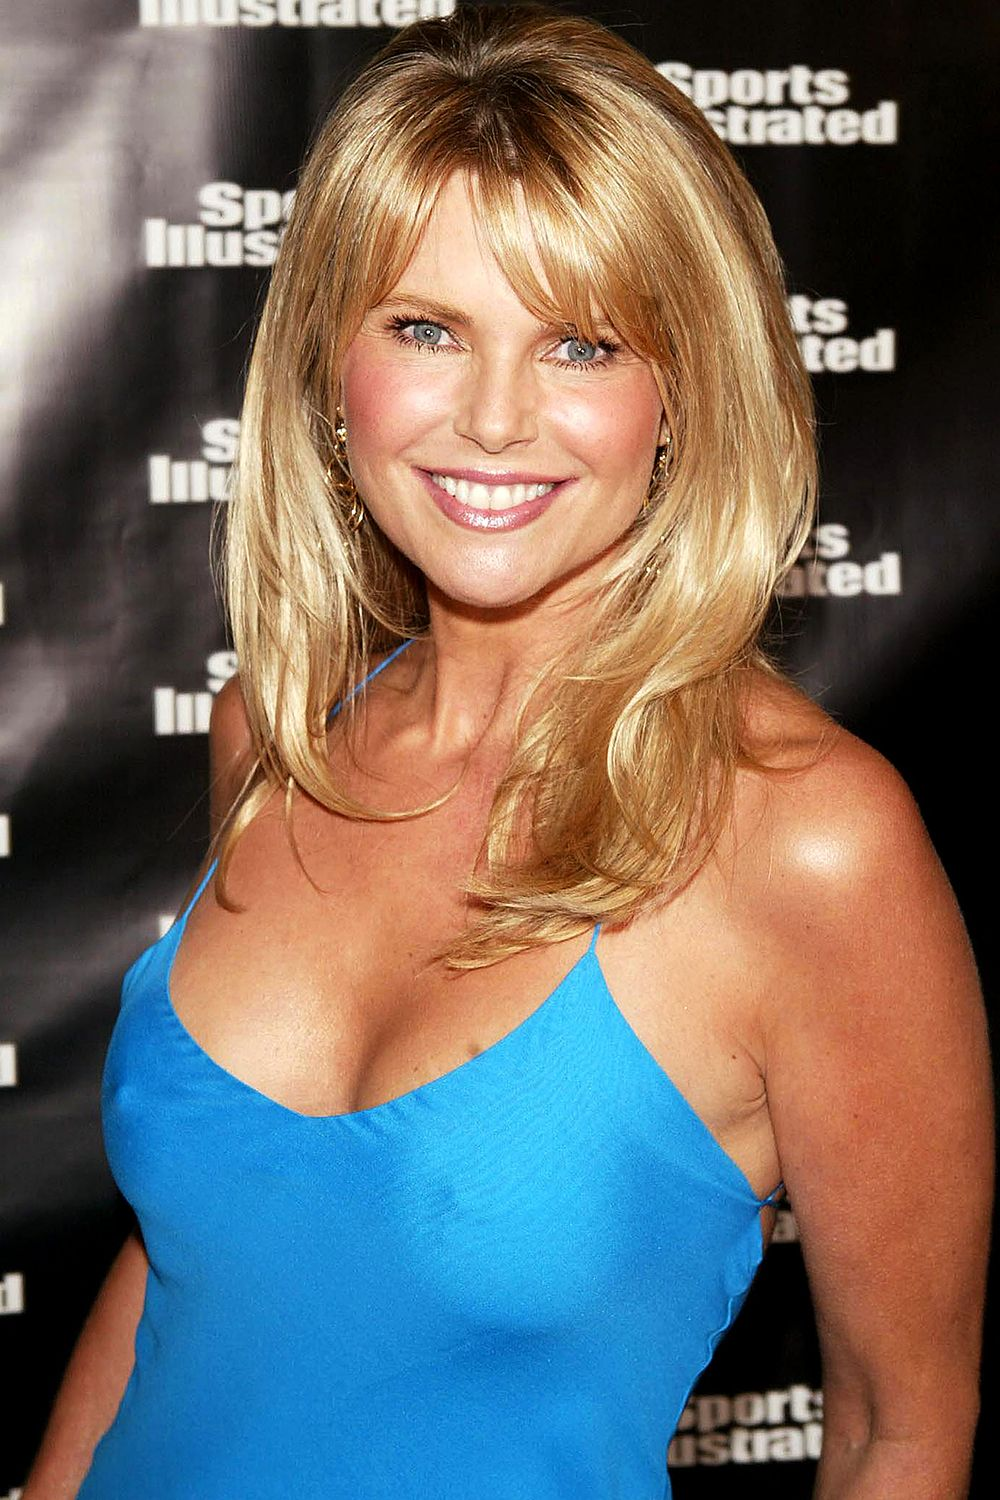 Christie Brinkley naked (52 photo) Selfie, YouTube, see through